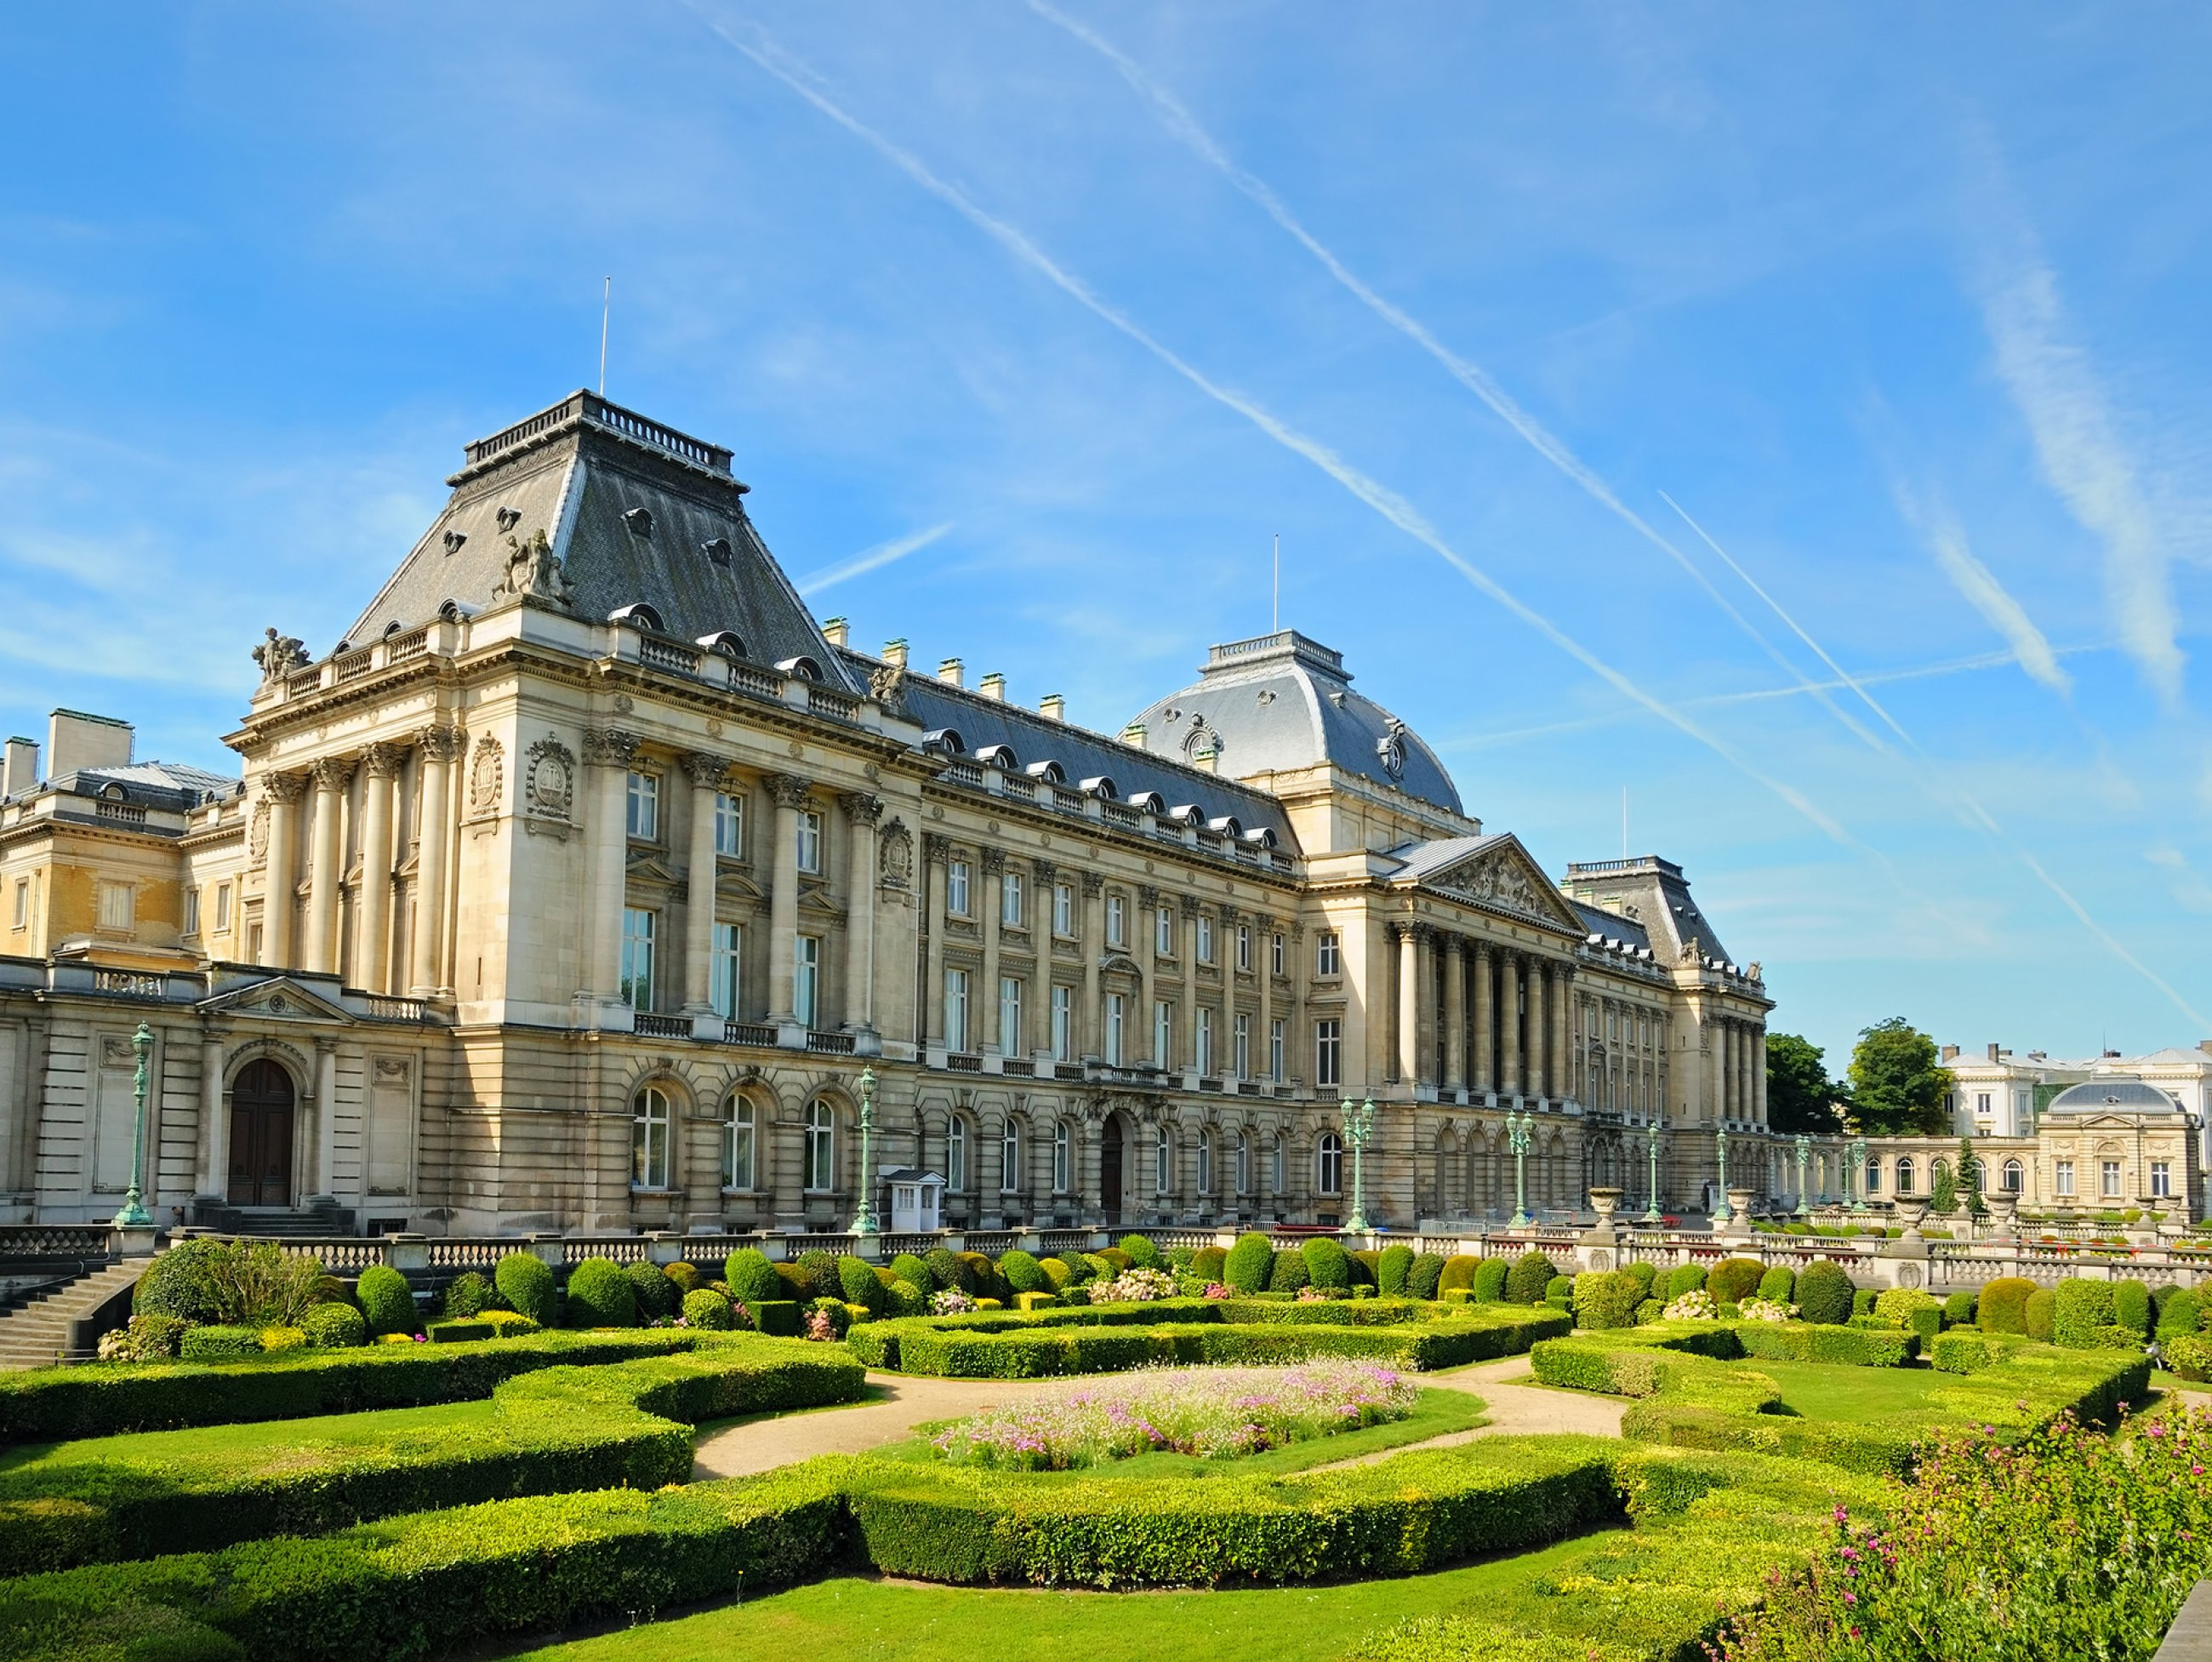 https://bubo.sk/uploads/galleries/5048/brusel-the-royal-palace-in-center-of-brussels.jpg